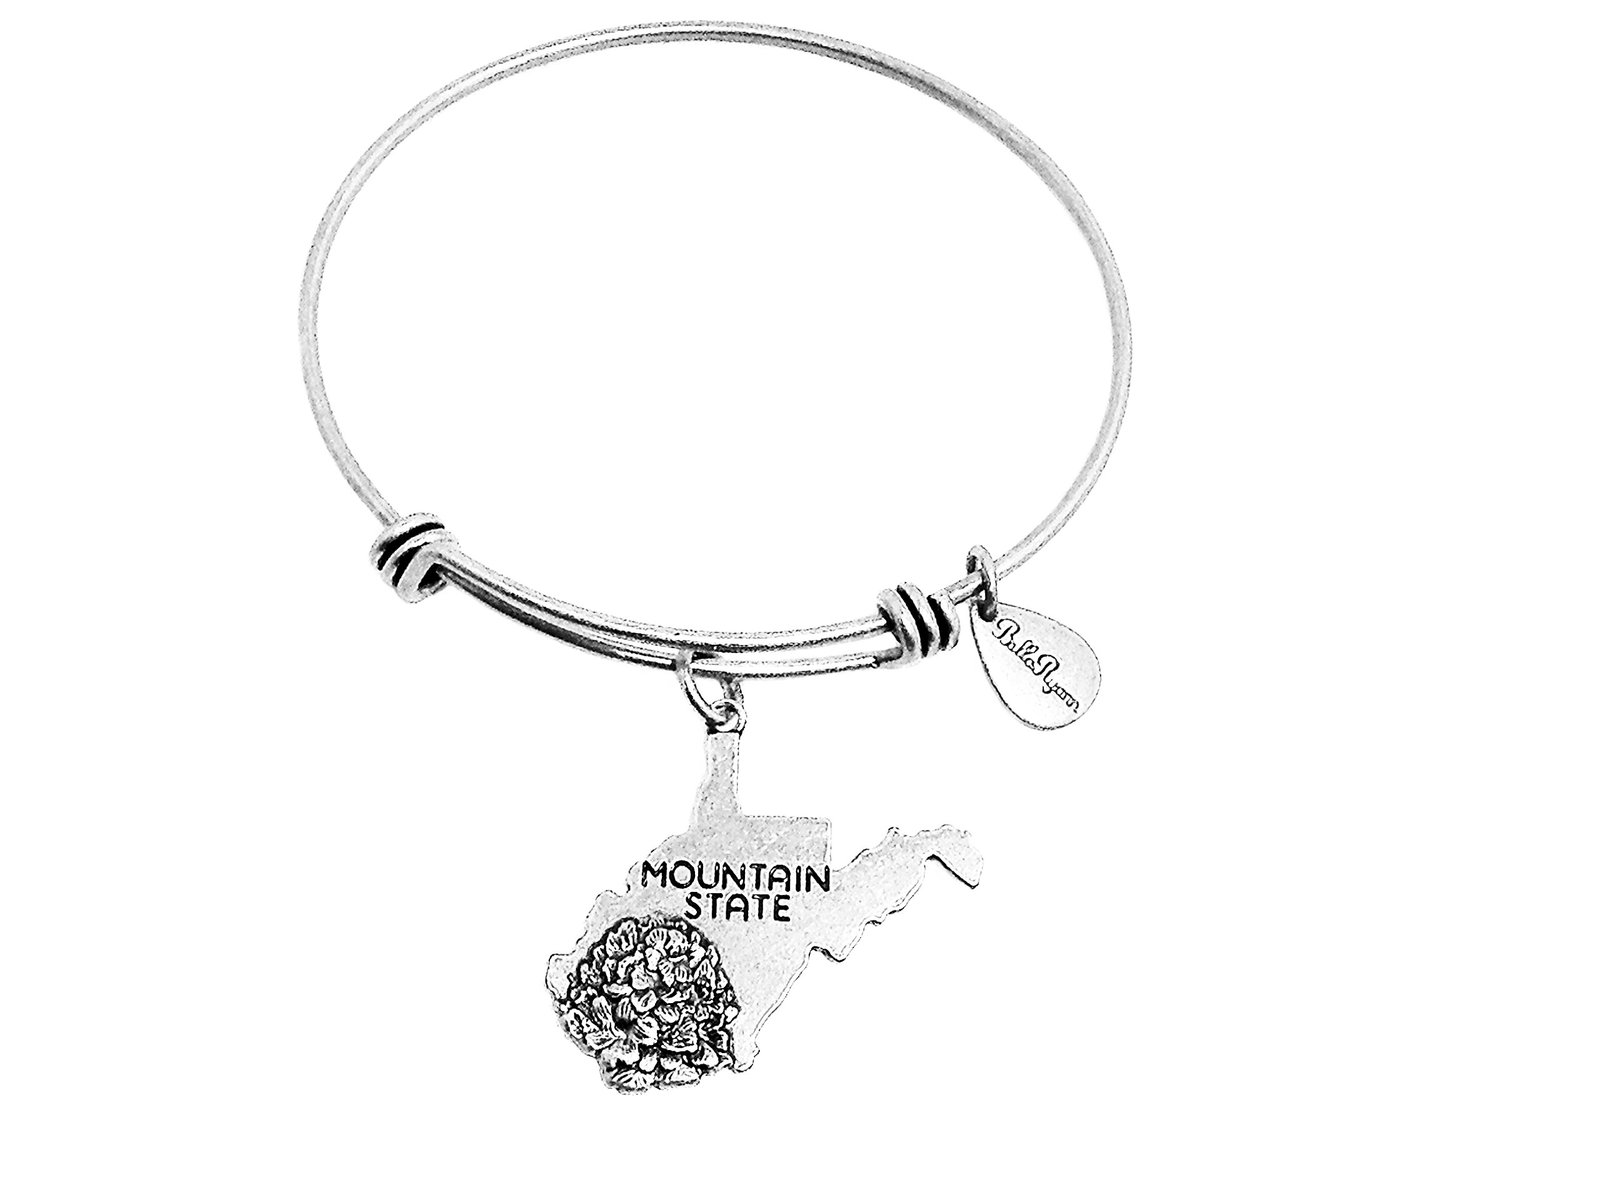 State of West Virginia Charm Bangle Bracelet